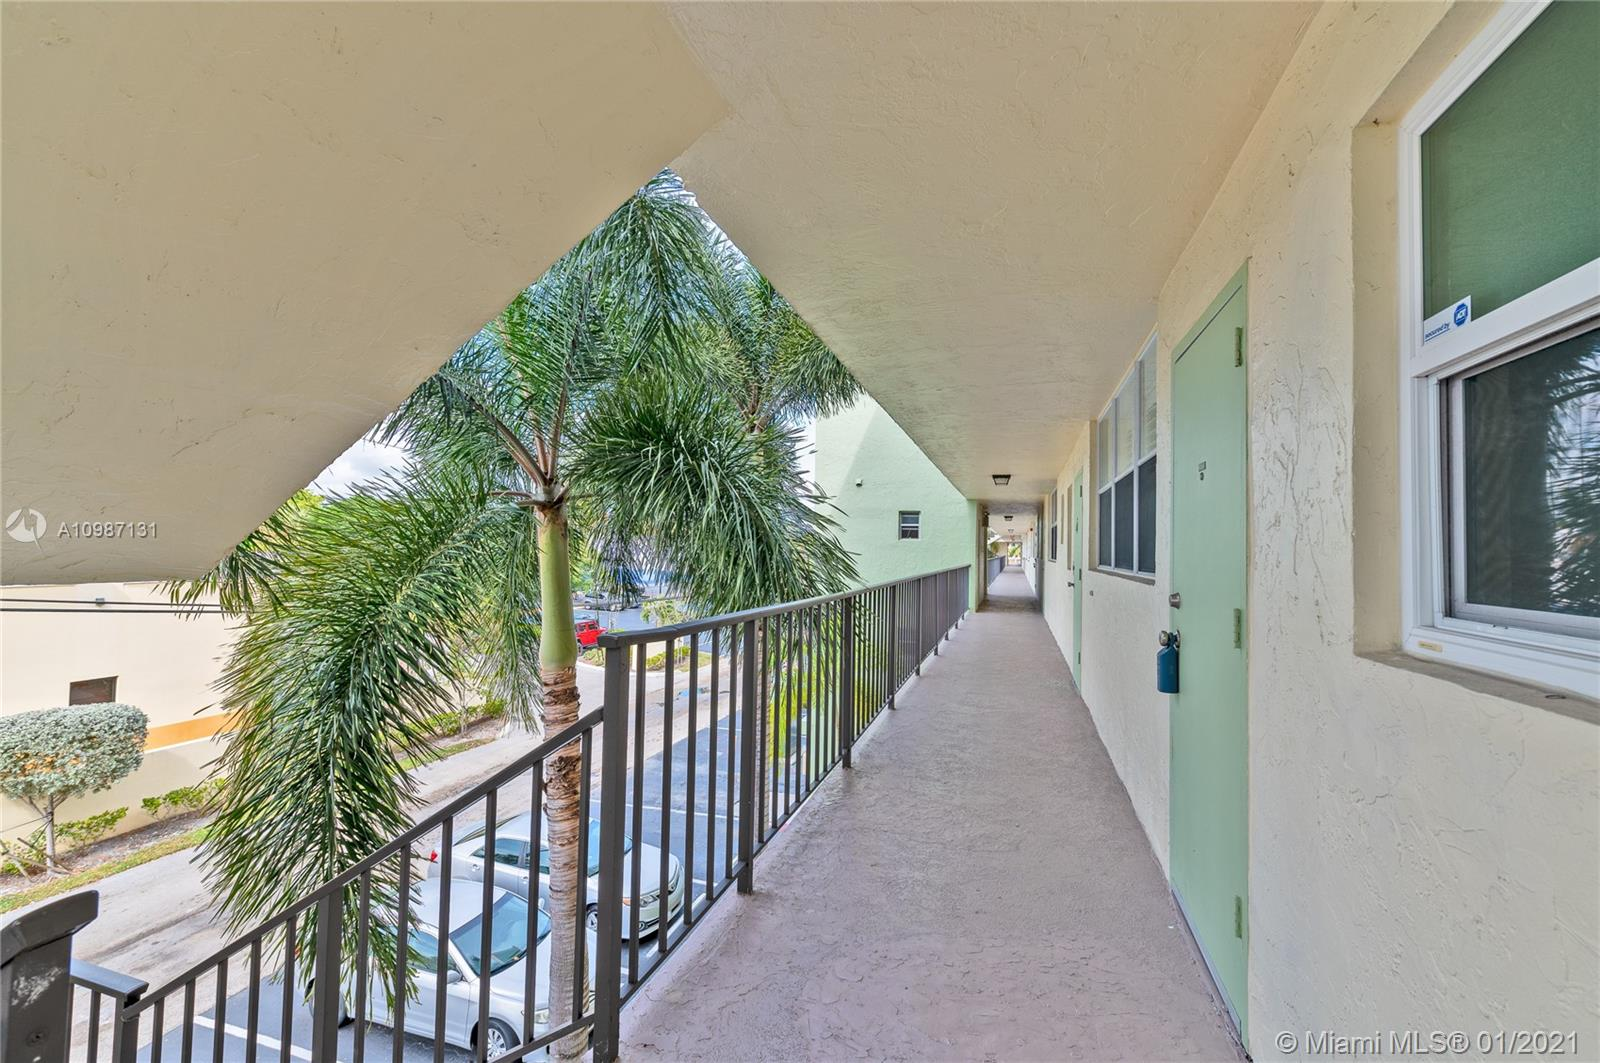 5321 NE 24th Ter # 314A, Fort Lauderdale, Florida 33308, 1 Bedroom Bedrooms, ,2 BathroomsBathrooms,Residential,For Sale,5321 NE 24th Ter # 314A,A10987131